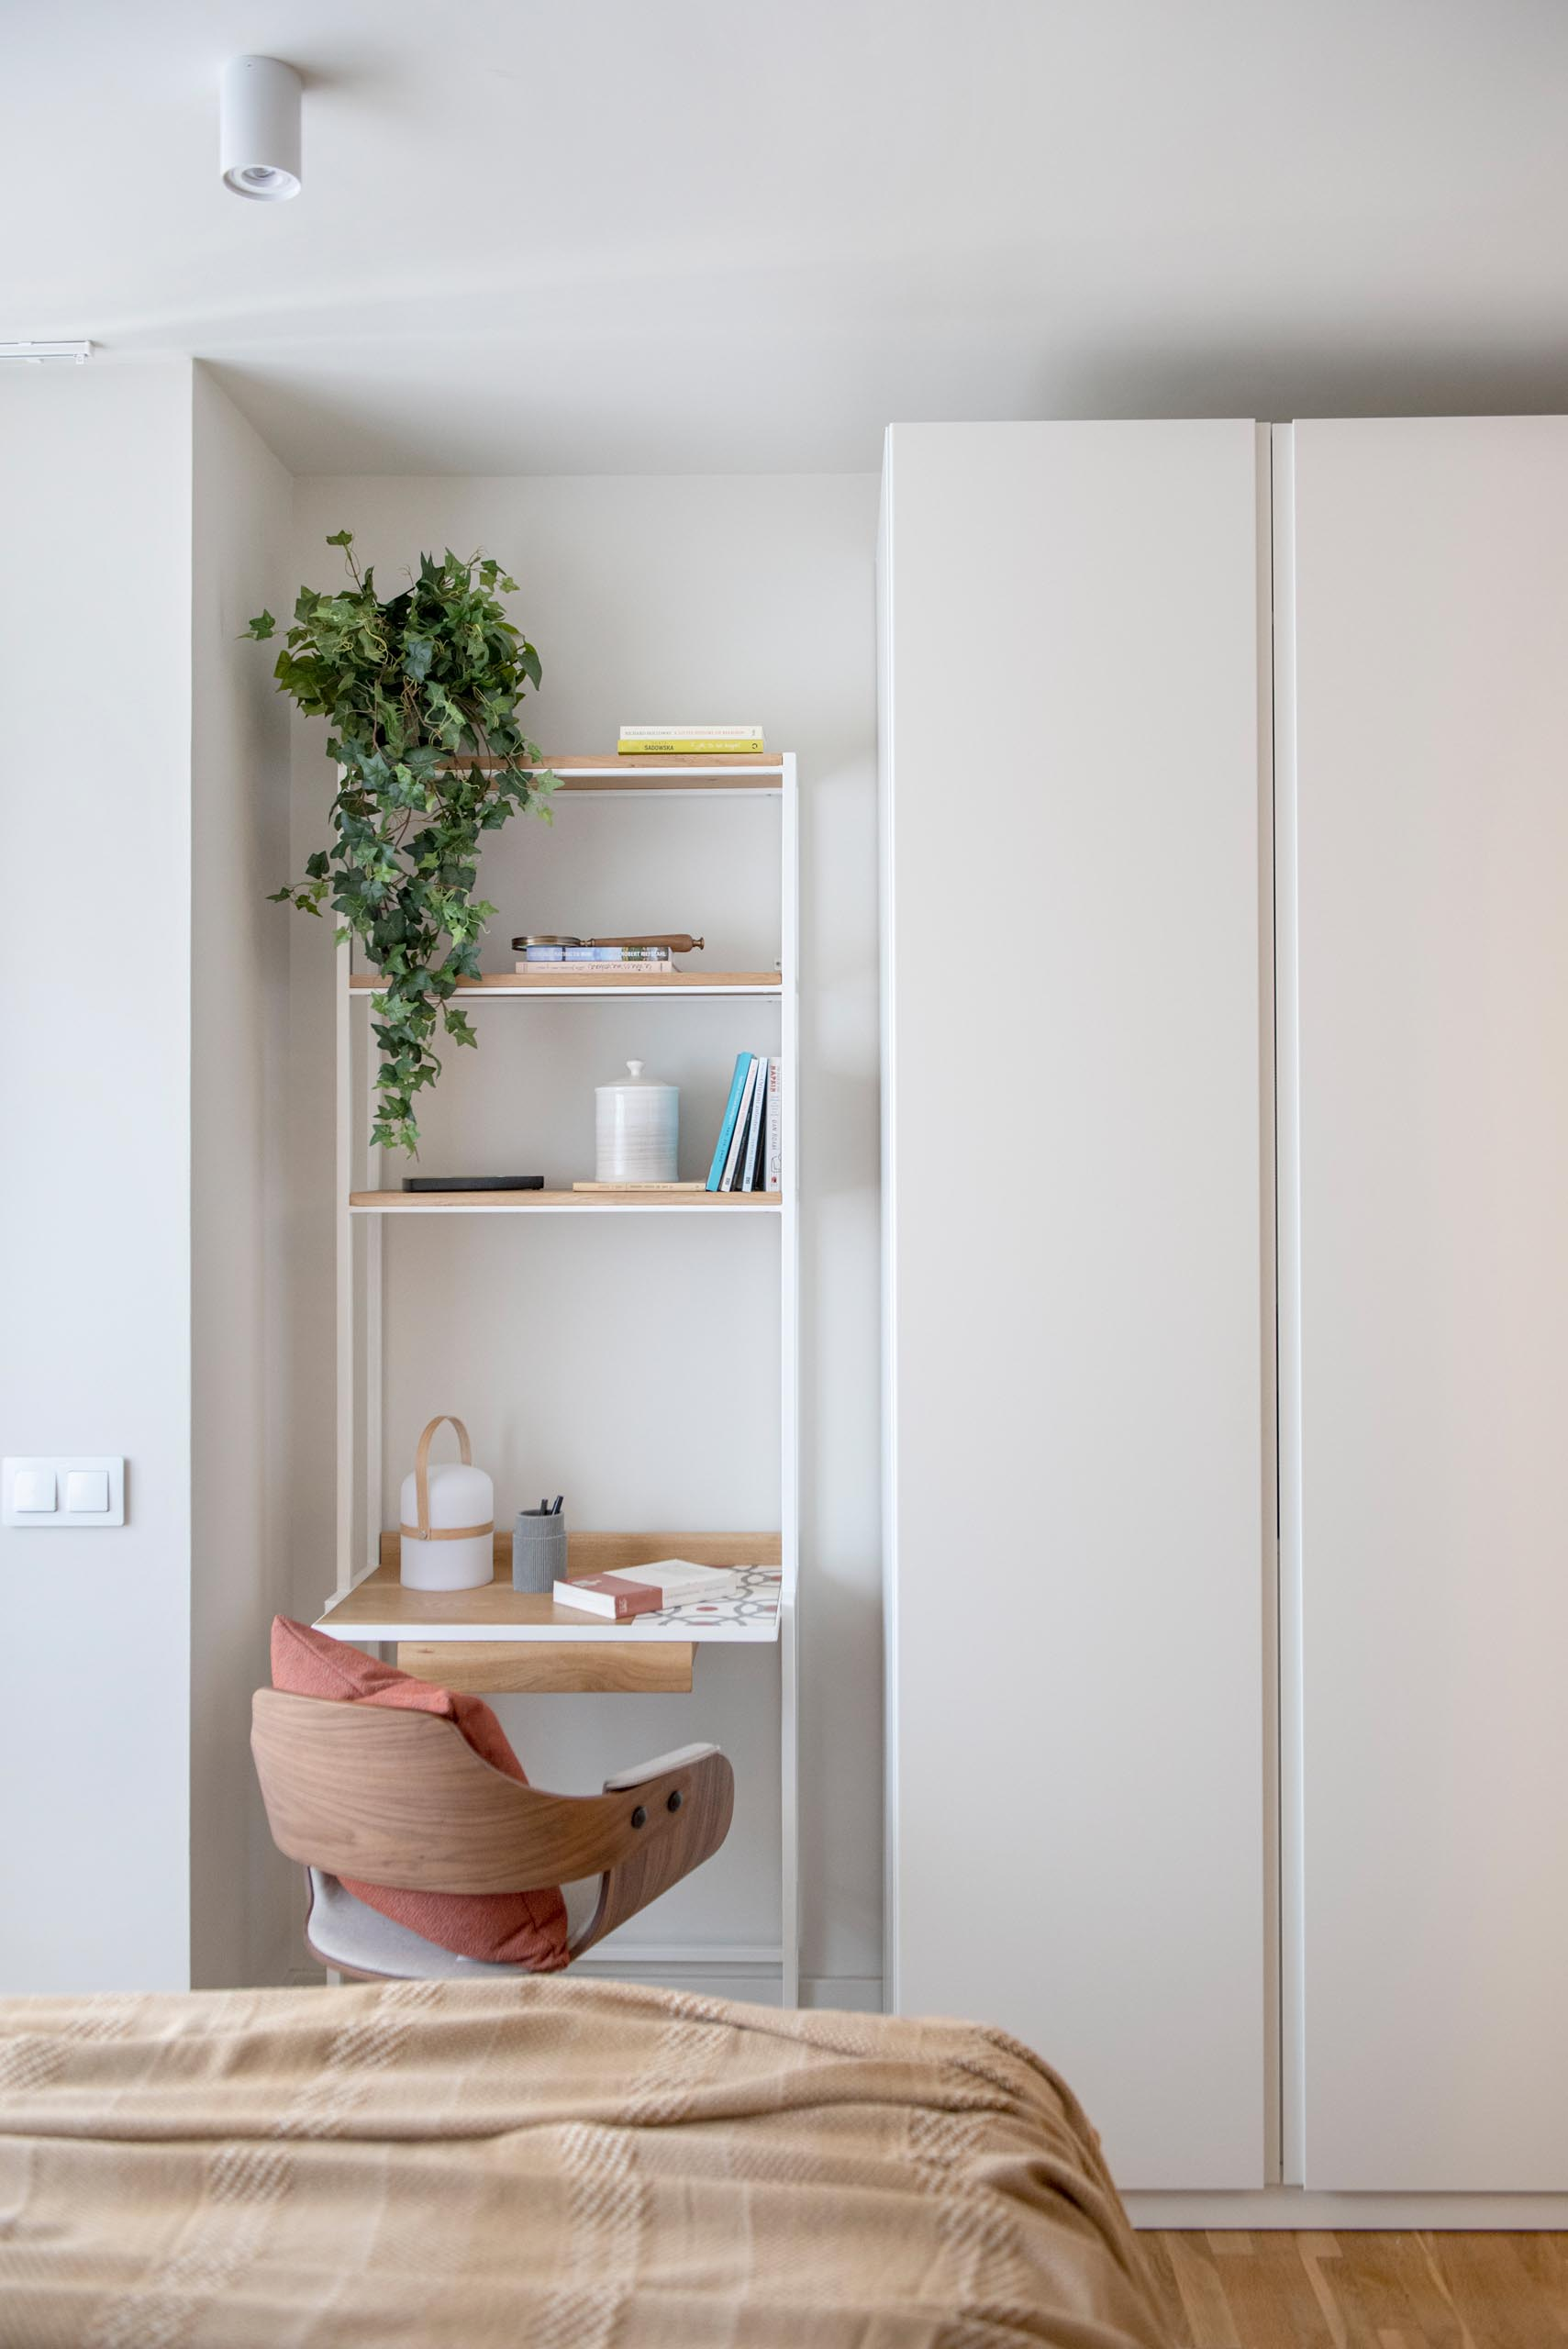 A modern bedroom with a small desk area.